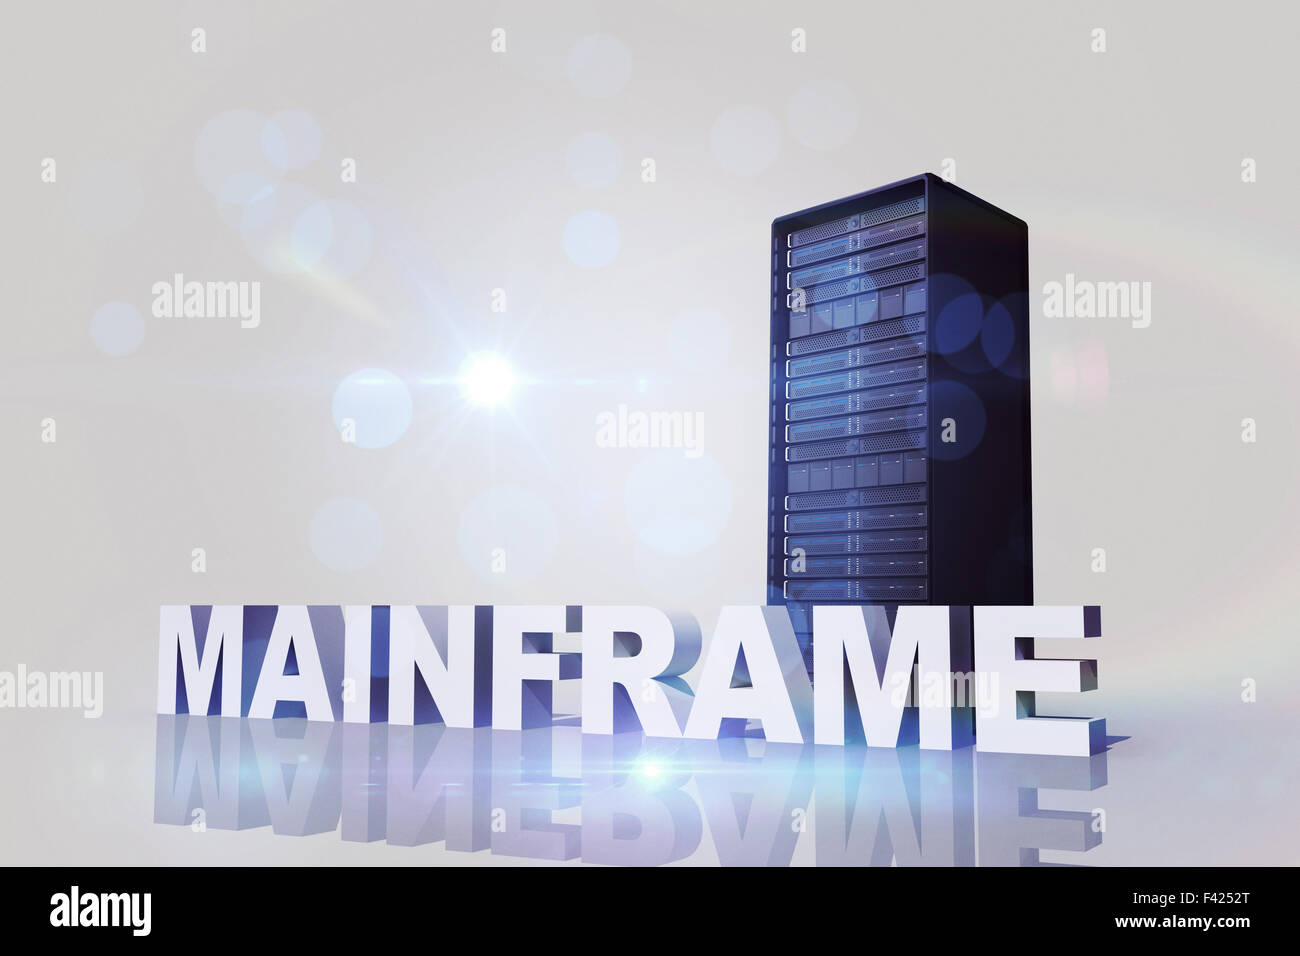 Composite image of mainframe - Stock Image